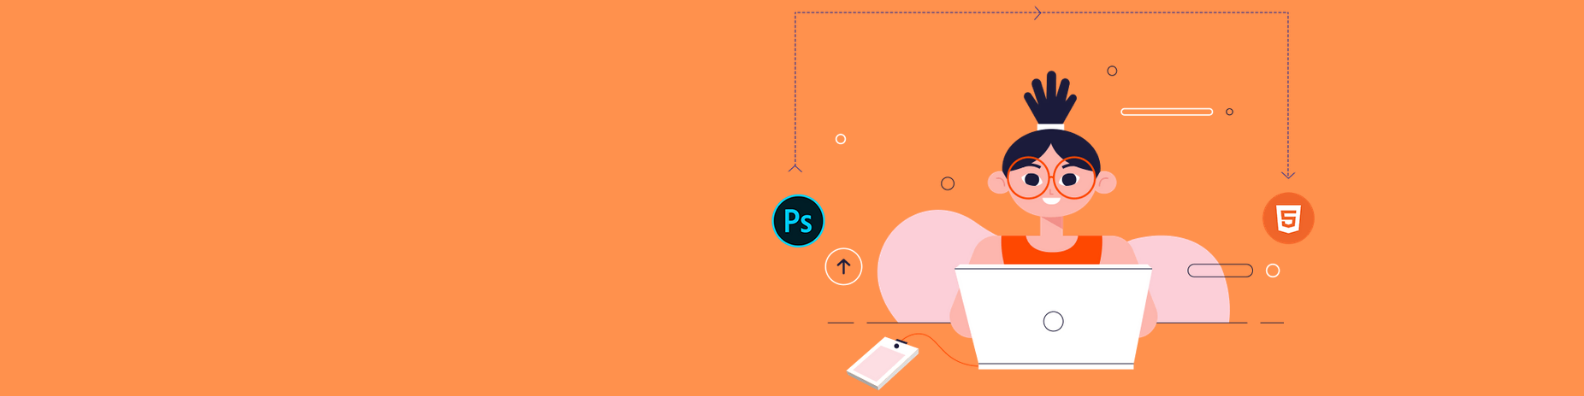 PSD to HTML converting